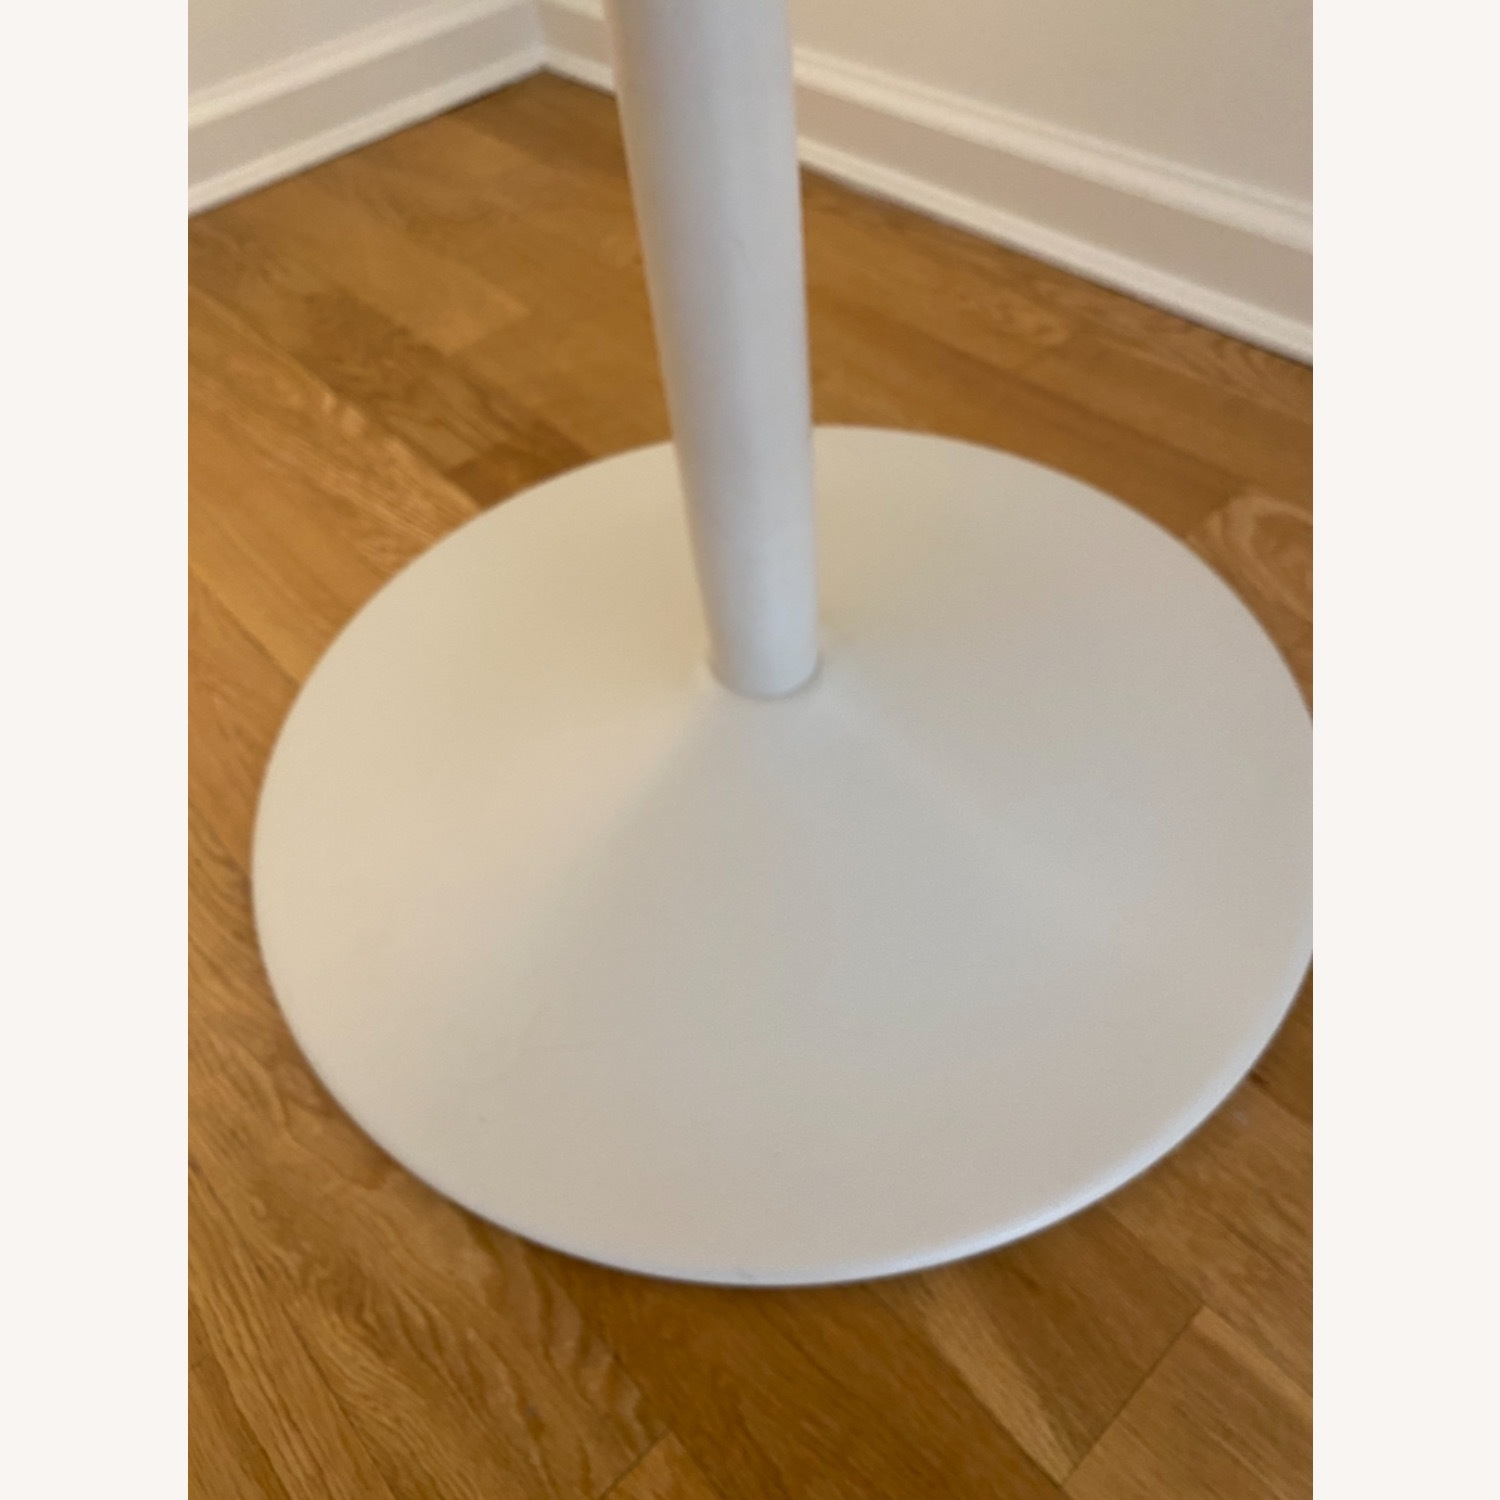 CB2 Odyssey Round Dining Table - image-10